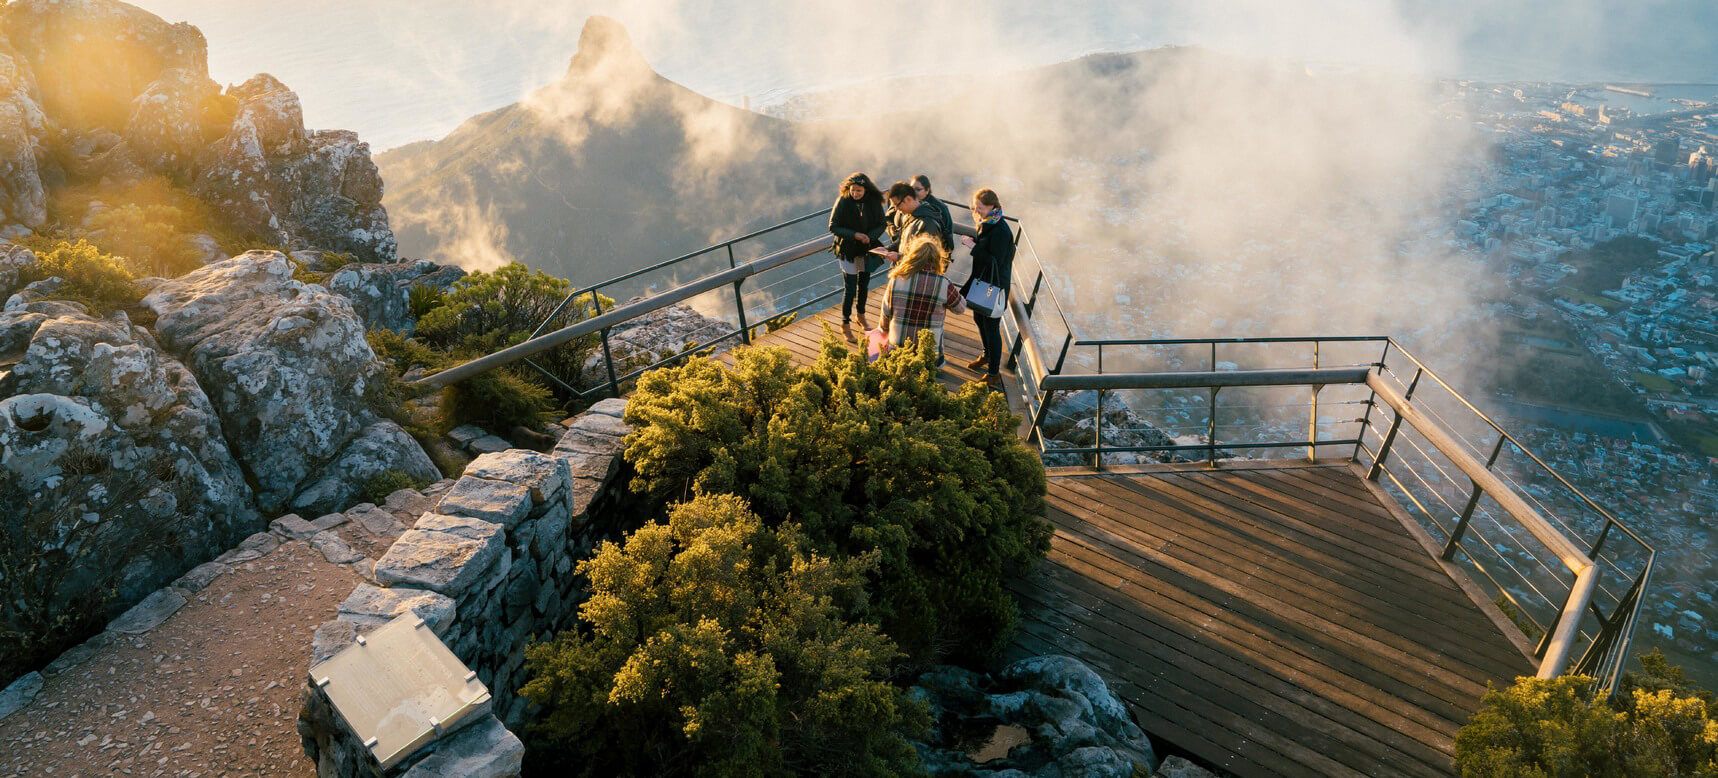 PwC releases new tourism and accomodation stats